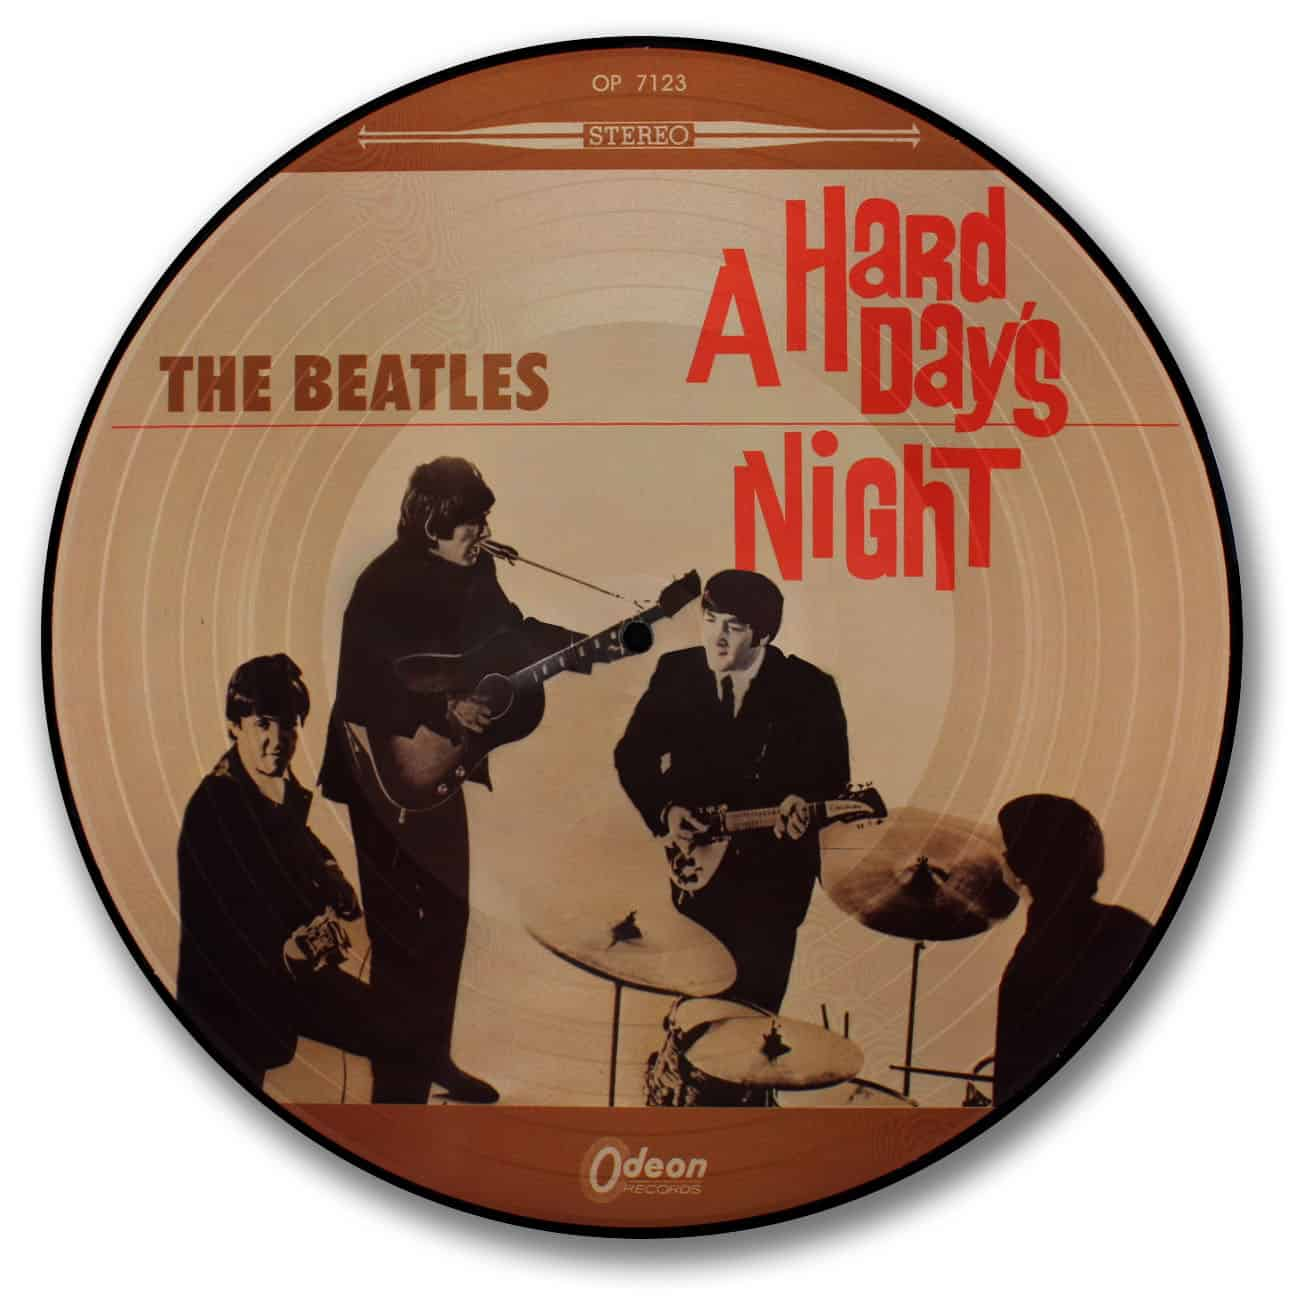 The Beatles, A Hard Days Night